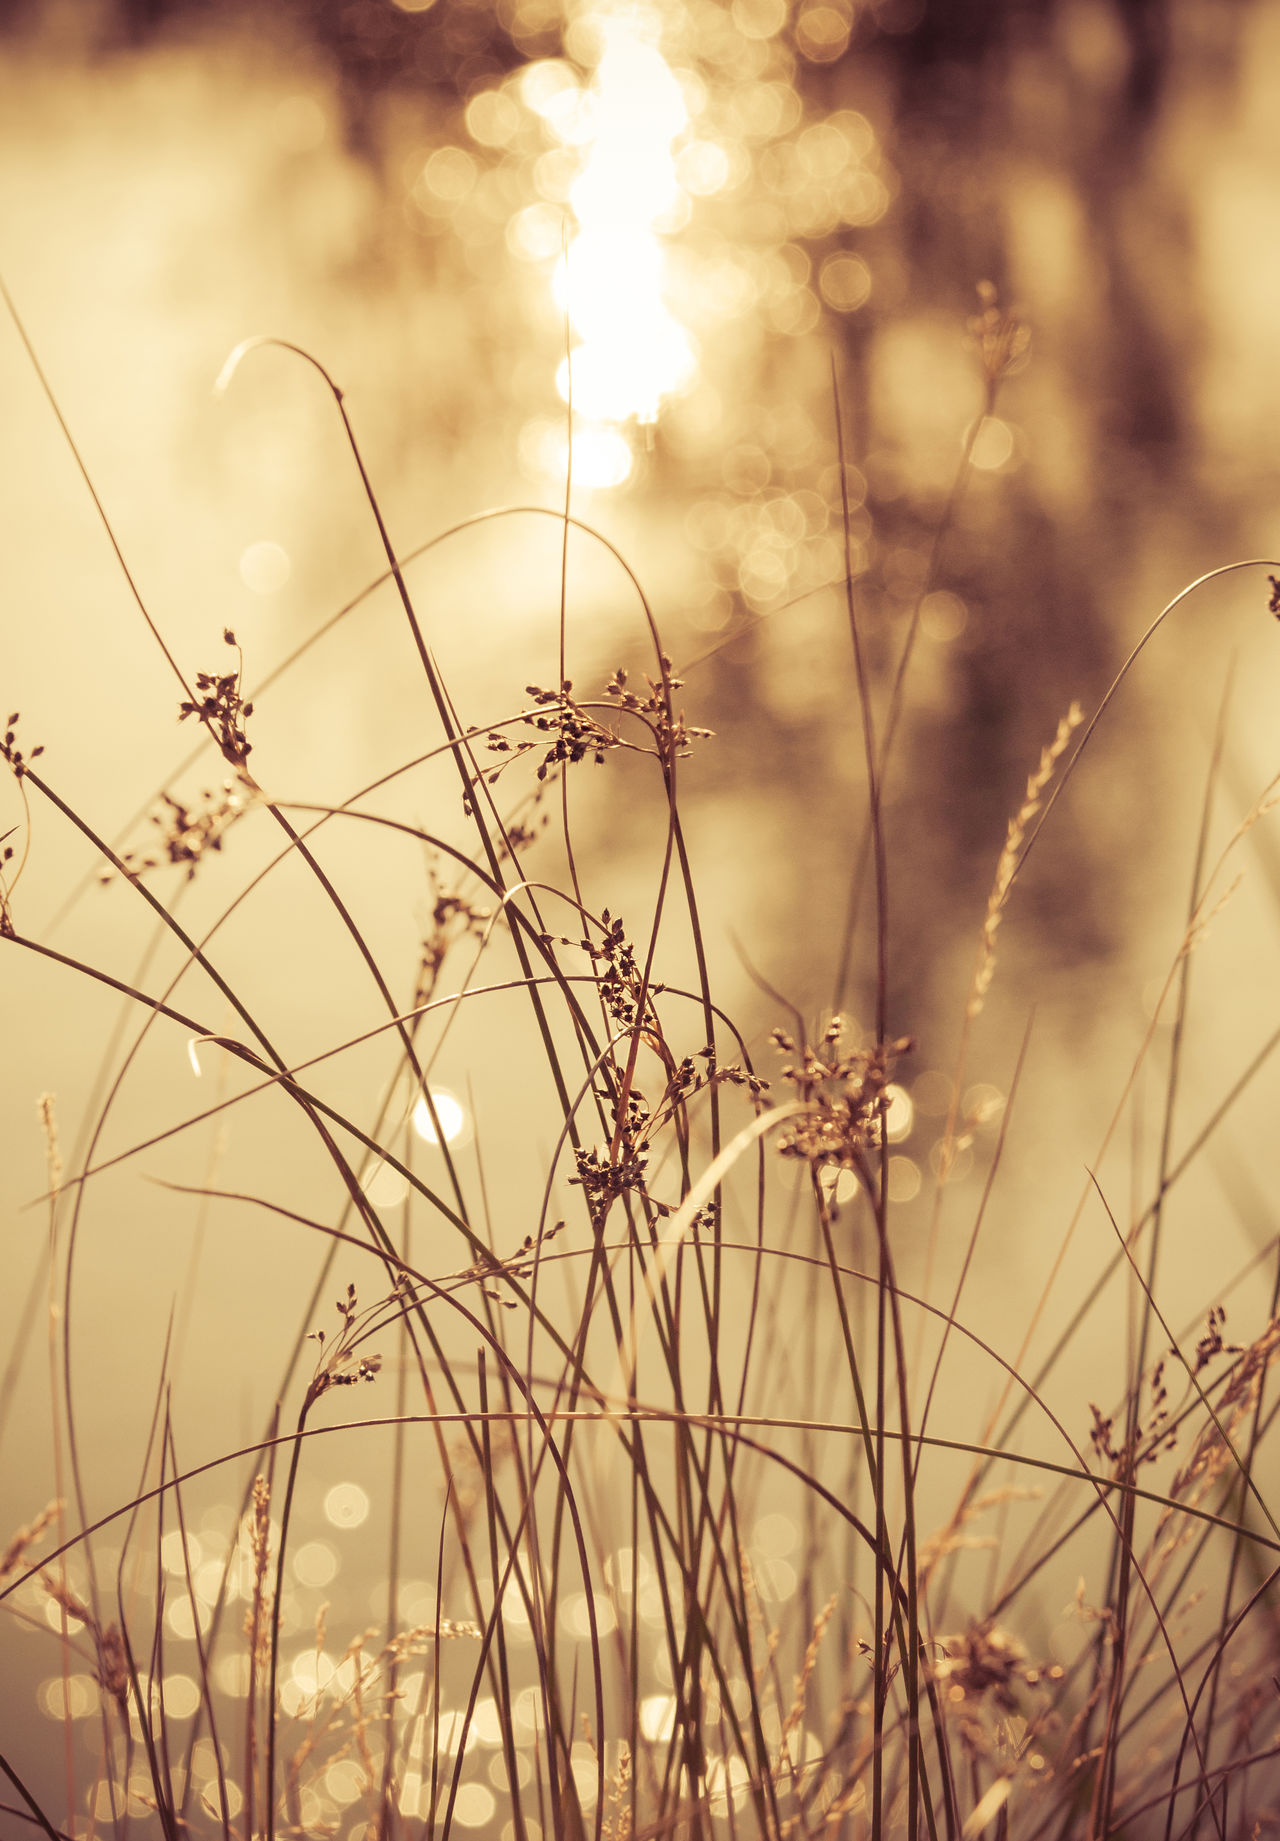 Beautiful Light Beauty In Nature Close-up Day End Of The Day Fields Of Gold Flowers Golden Hour Grass Grasslands Growth Meadow Meadow Flowers Nature No People Outdoors Plant Serenity Soft Sunset Tranquility Vertical Bokeh Warm Light Warm Colors